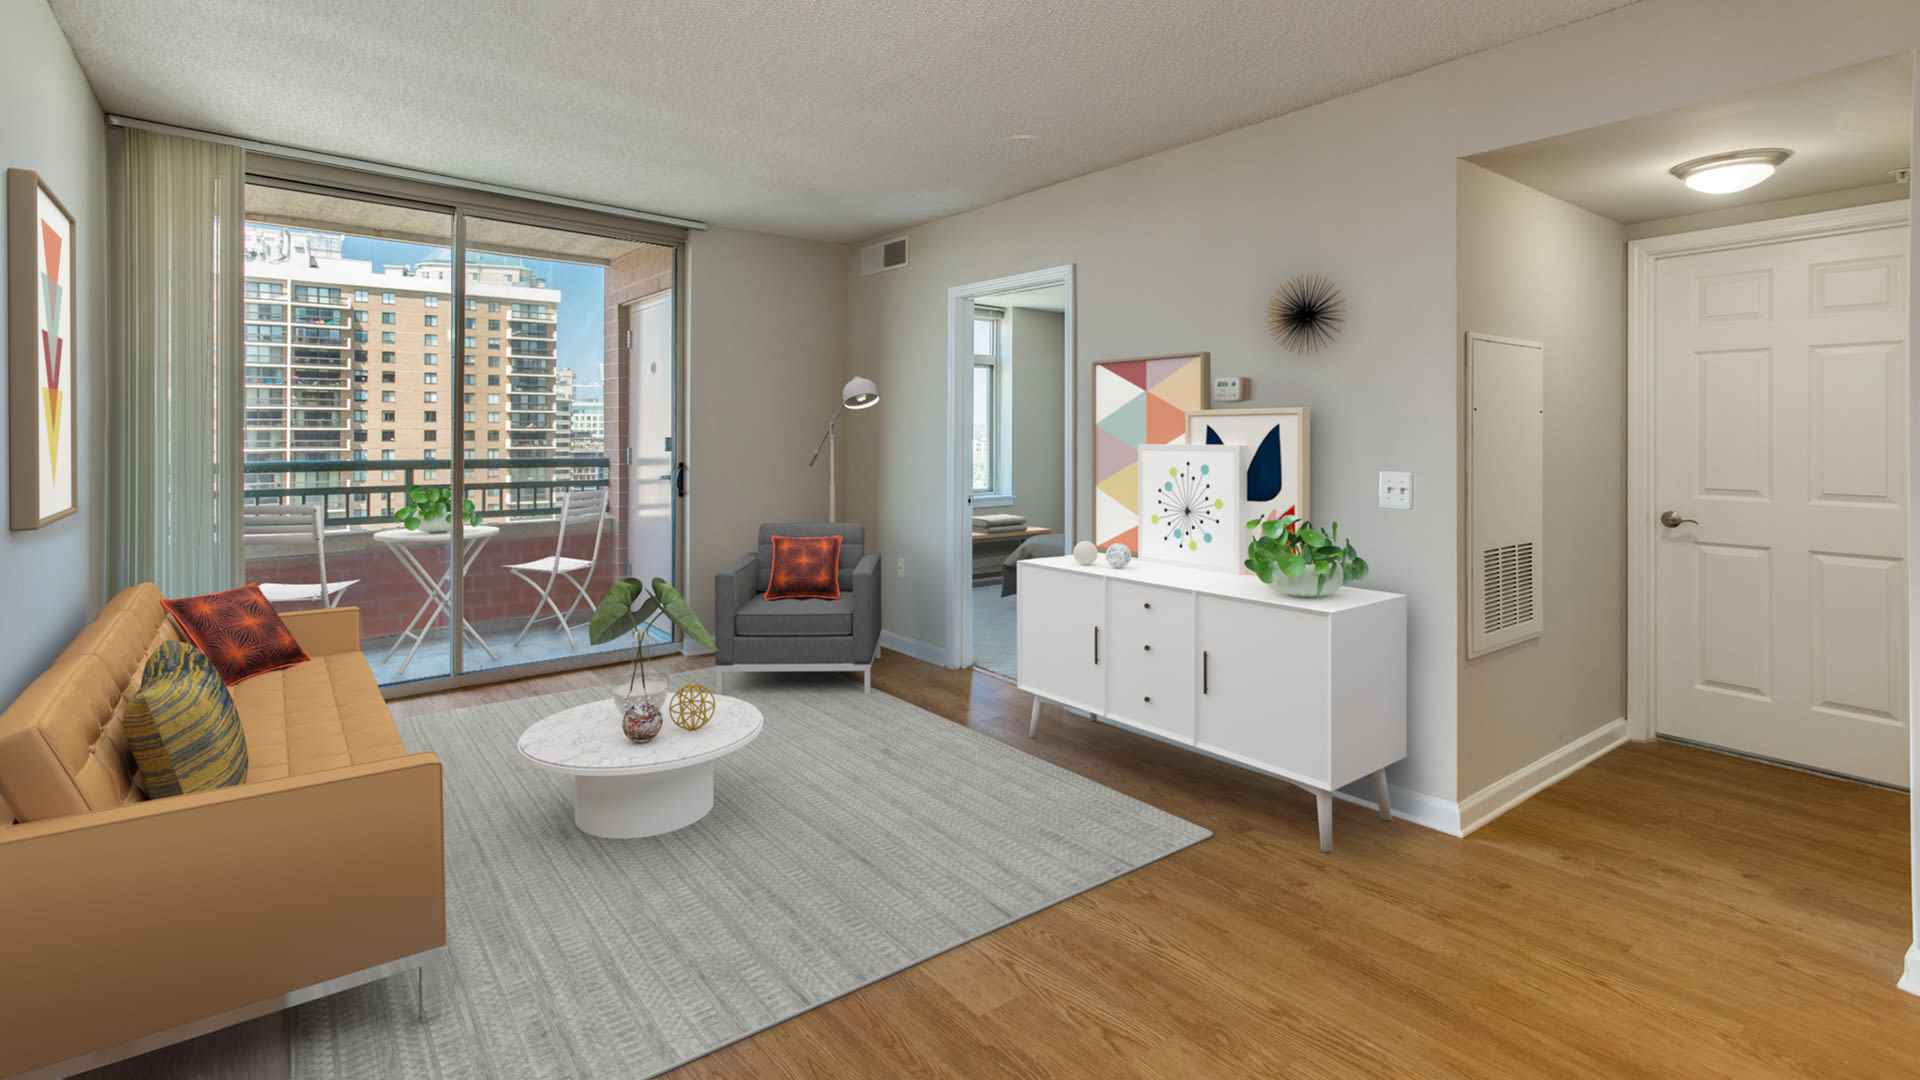 Virginia Square Apartments - Living Room with Hard Surface Flooring and Balcony